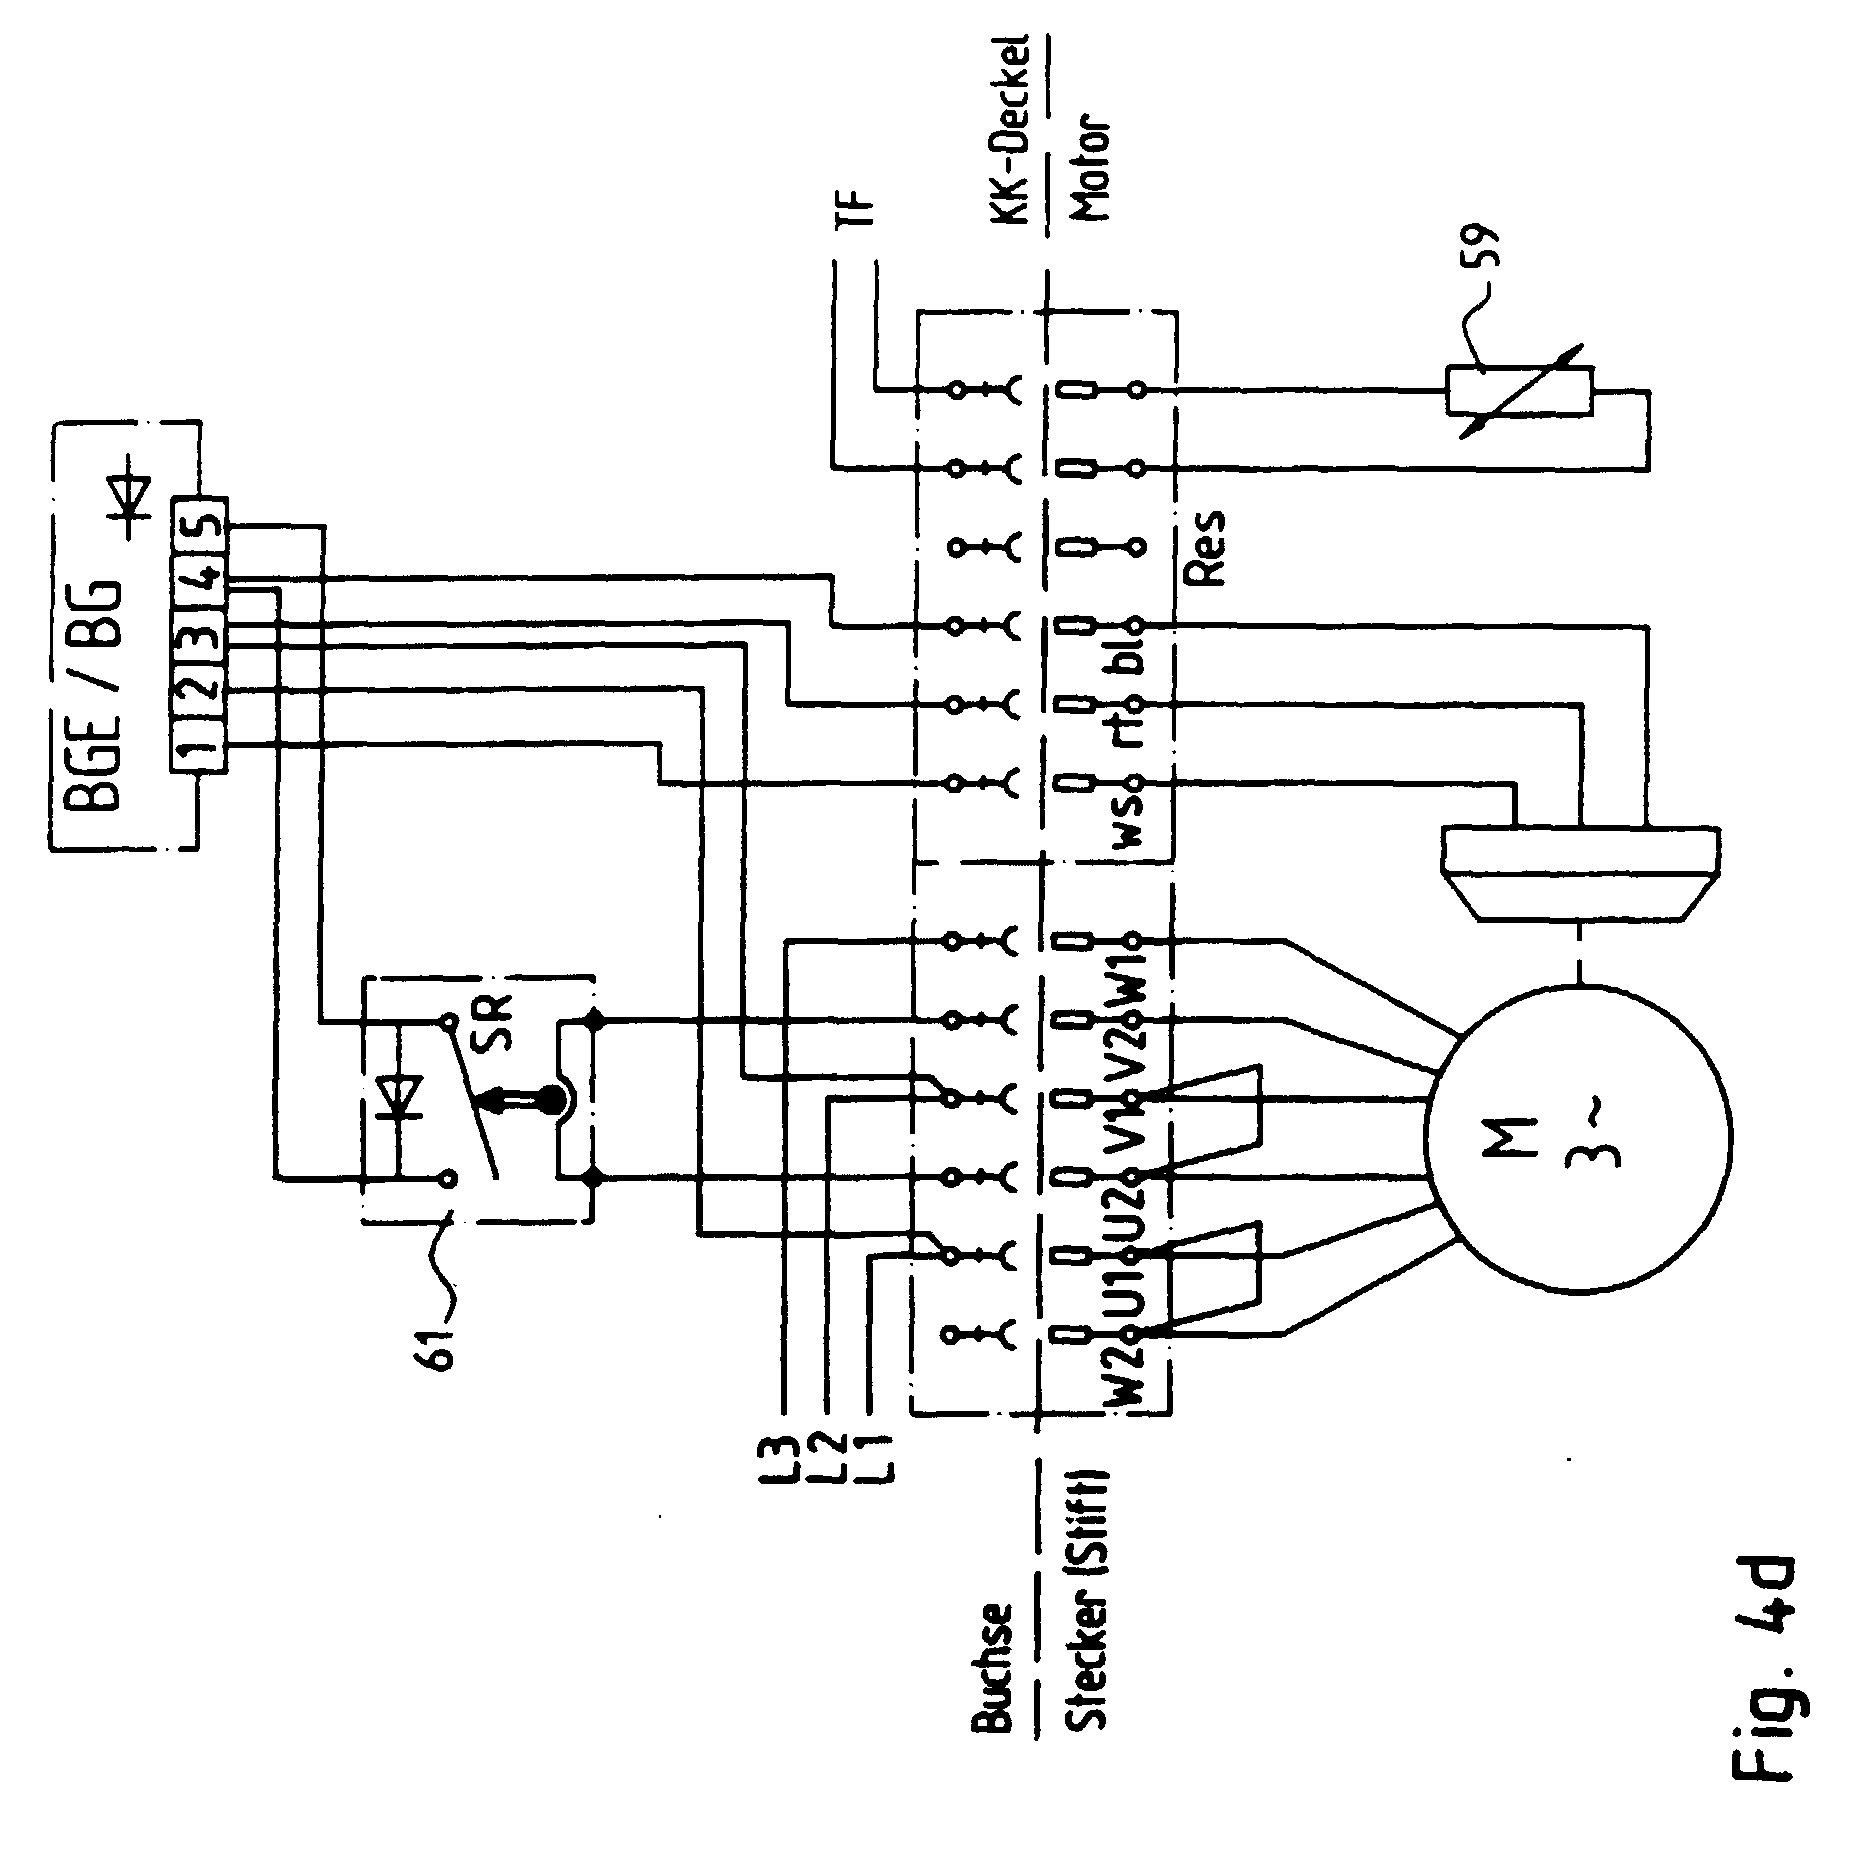 sew eurodrive wiring diagrams sew free engine image for user manual